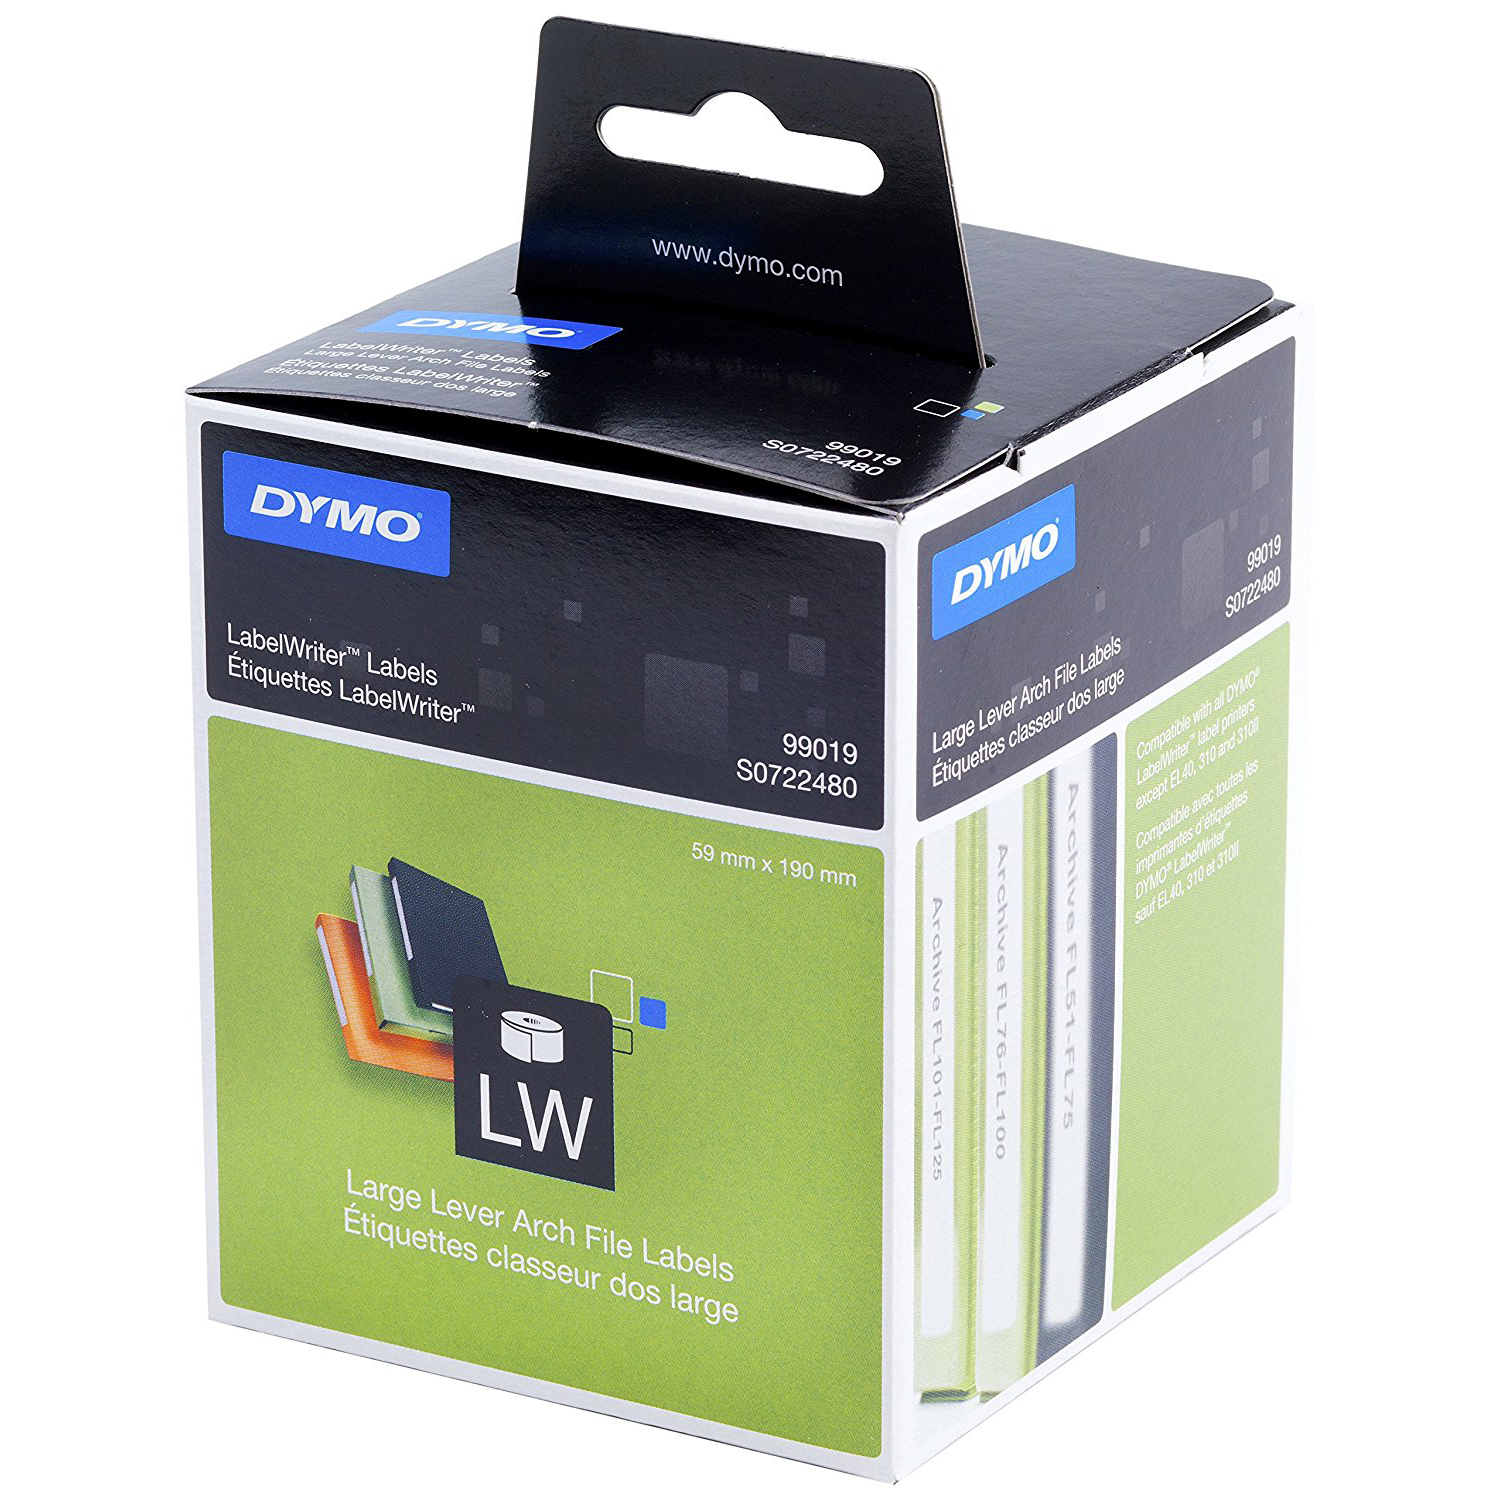 Dymo S0722480 (99019) LW Broad Folder Labels Black on White 190mm x 59mm - 110 Labels/Roll